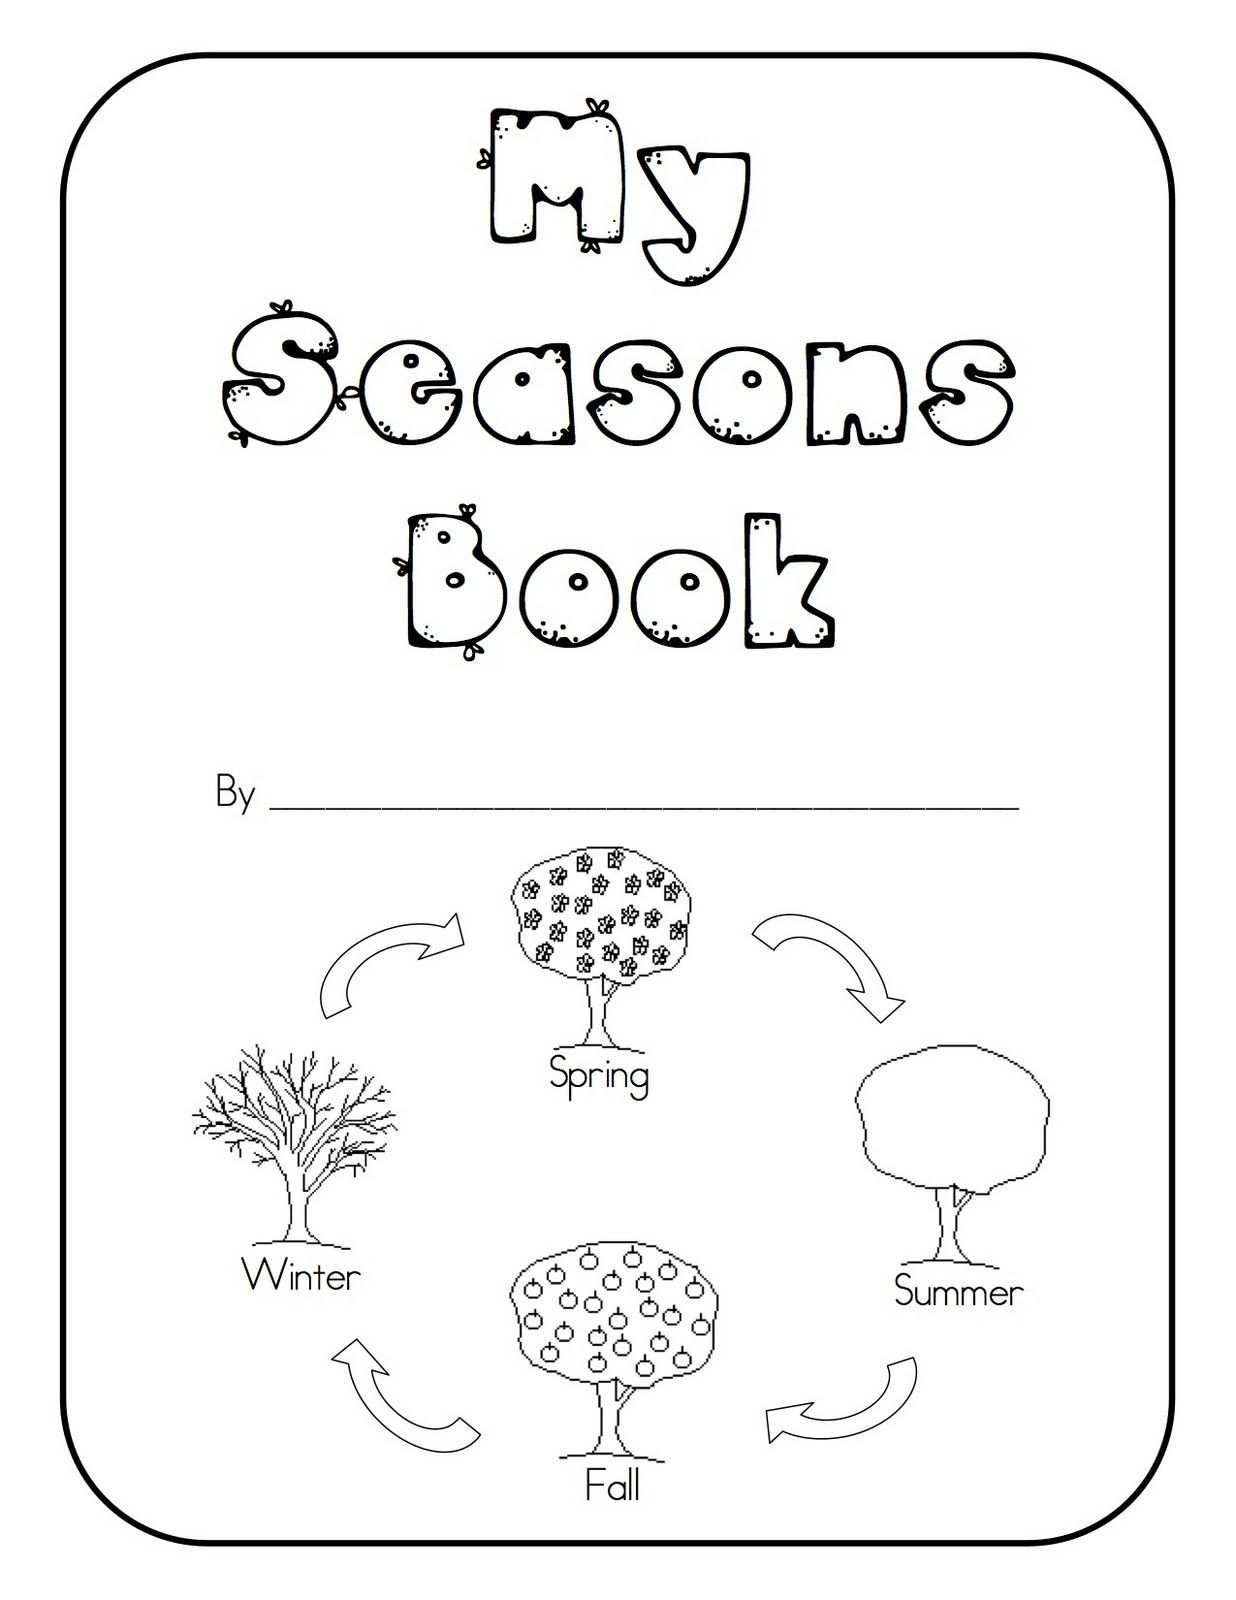 Weather Worksheets for First Graders thermometer Worksheets 1st Grade Printable and Pay It